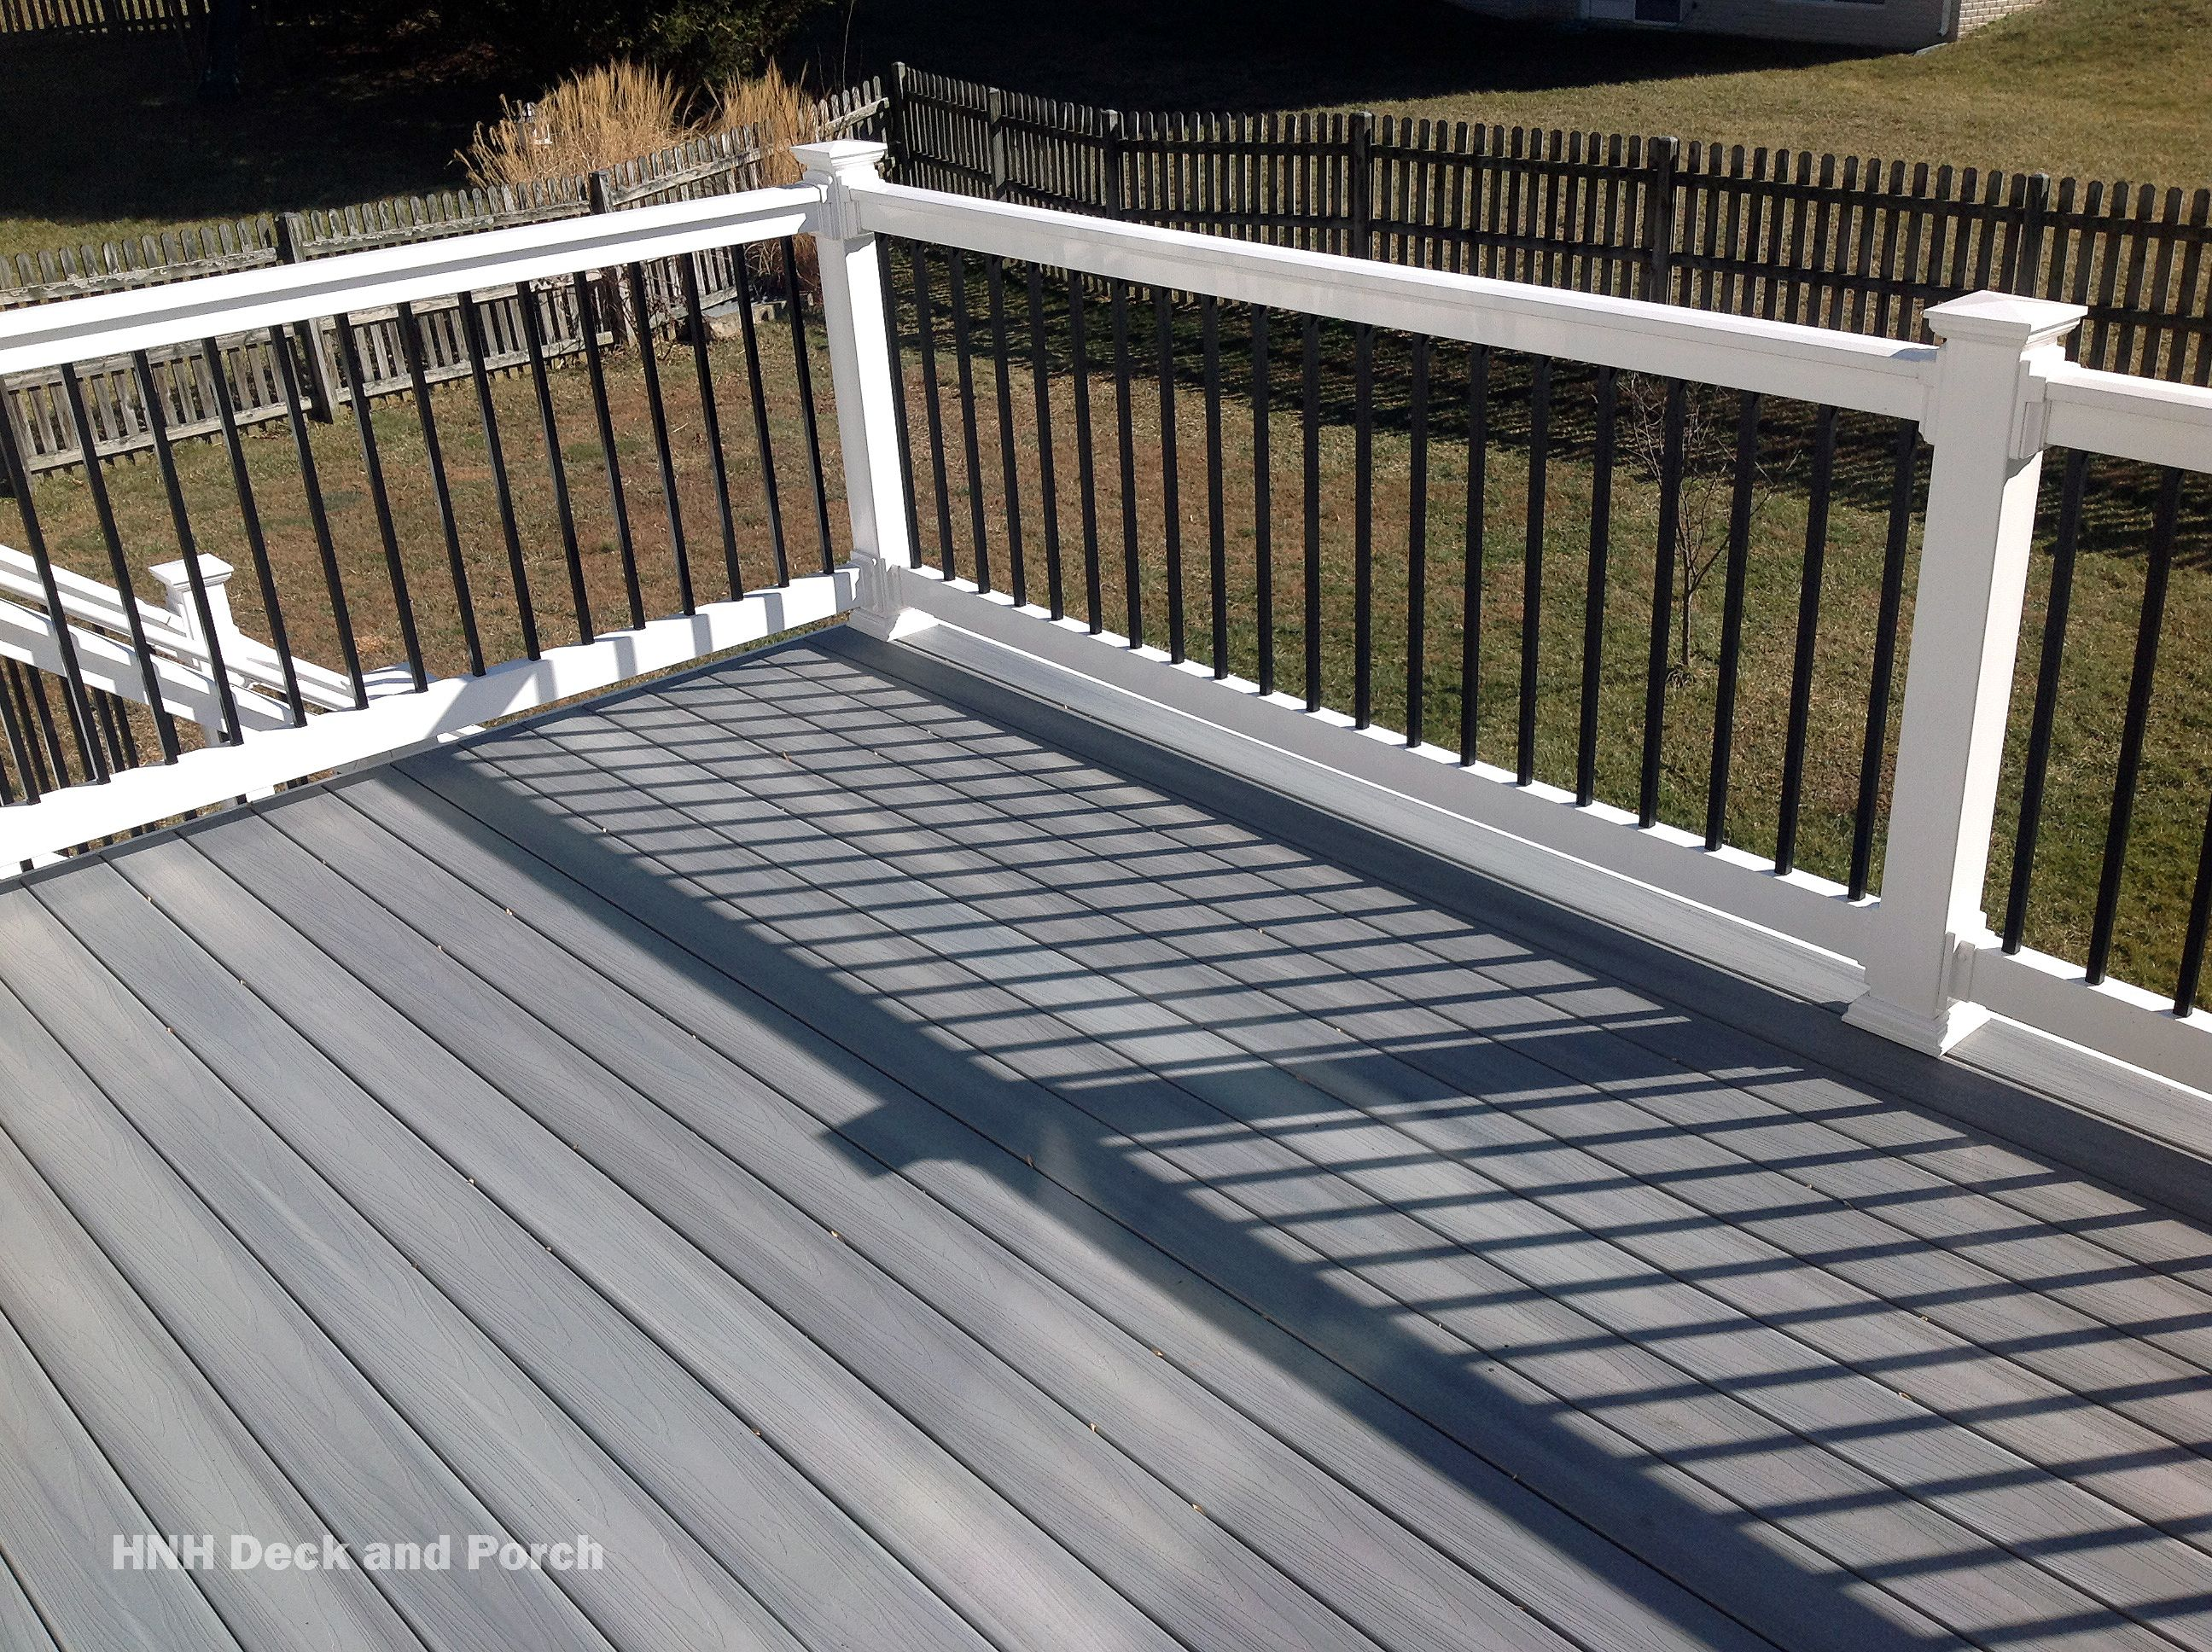 composite deck using @fiberondecking castle grey decking with